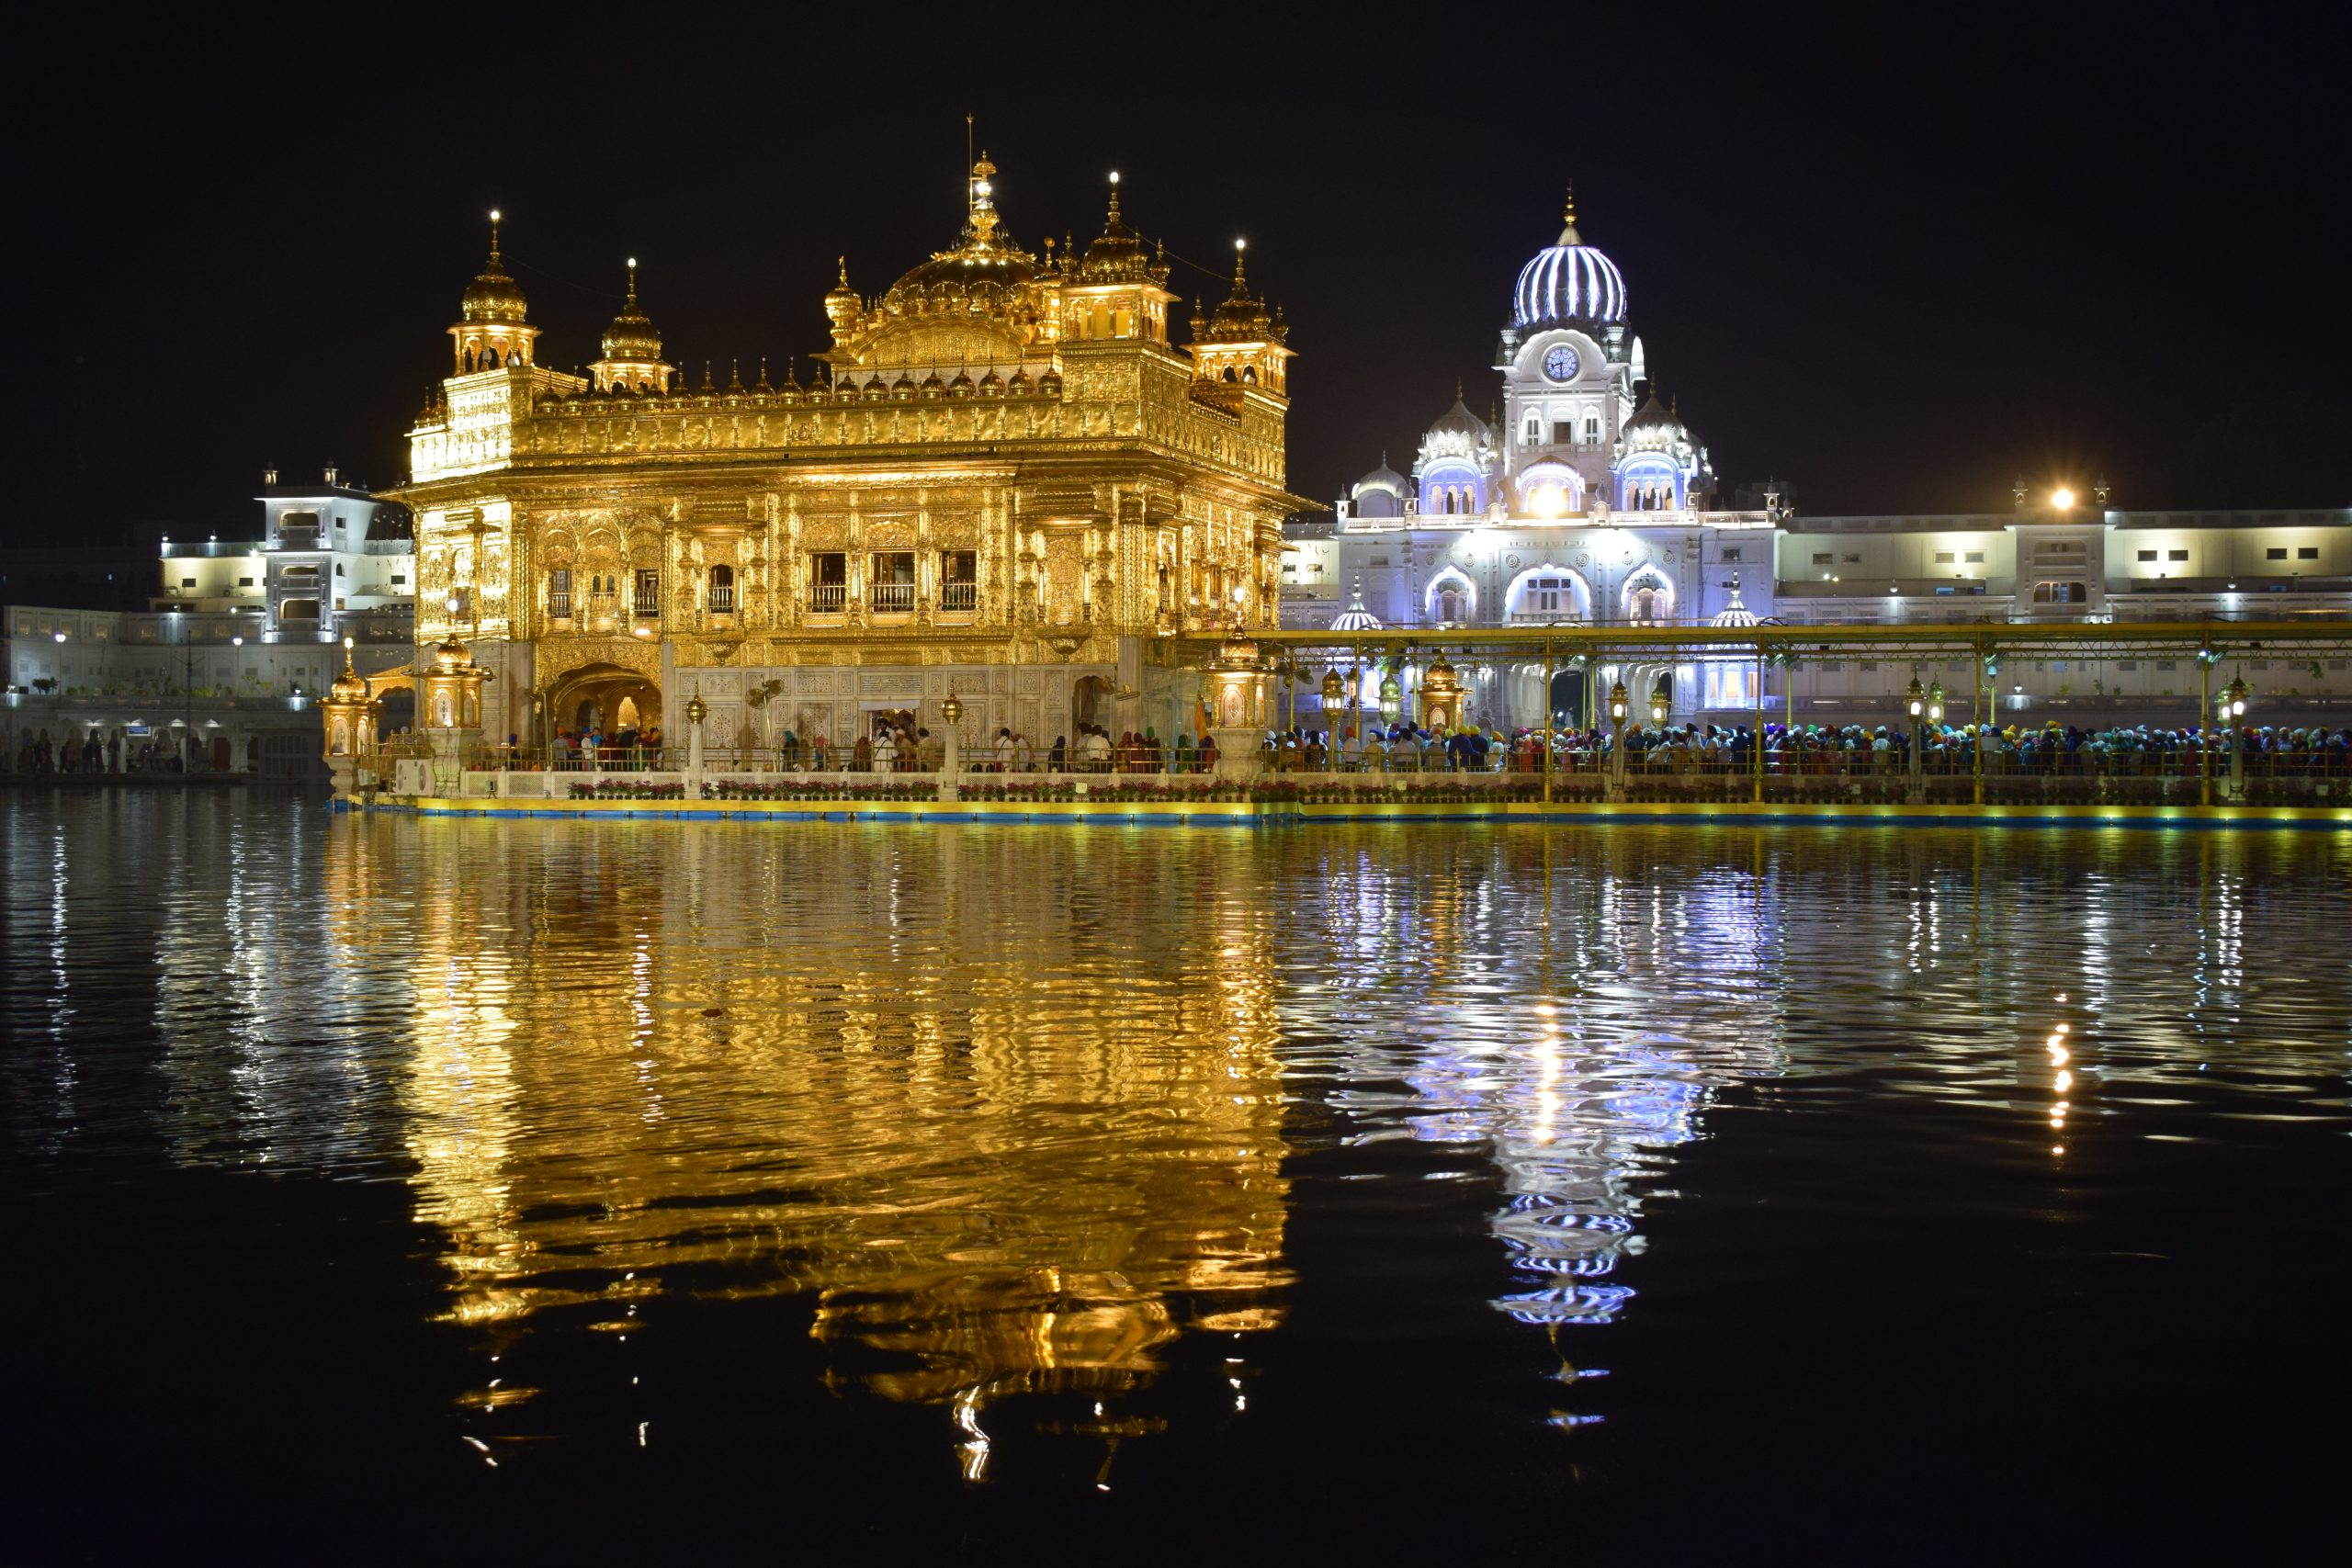 Sri Harmandir Sahib in India